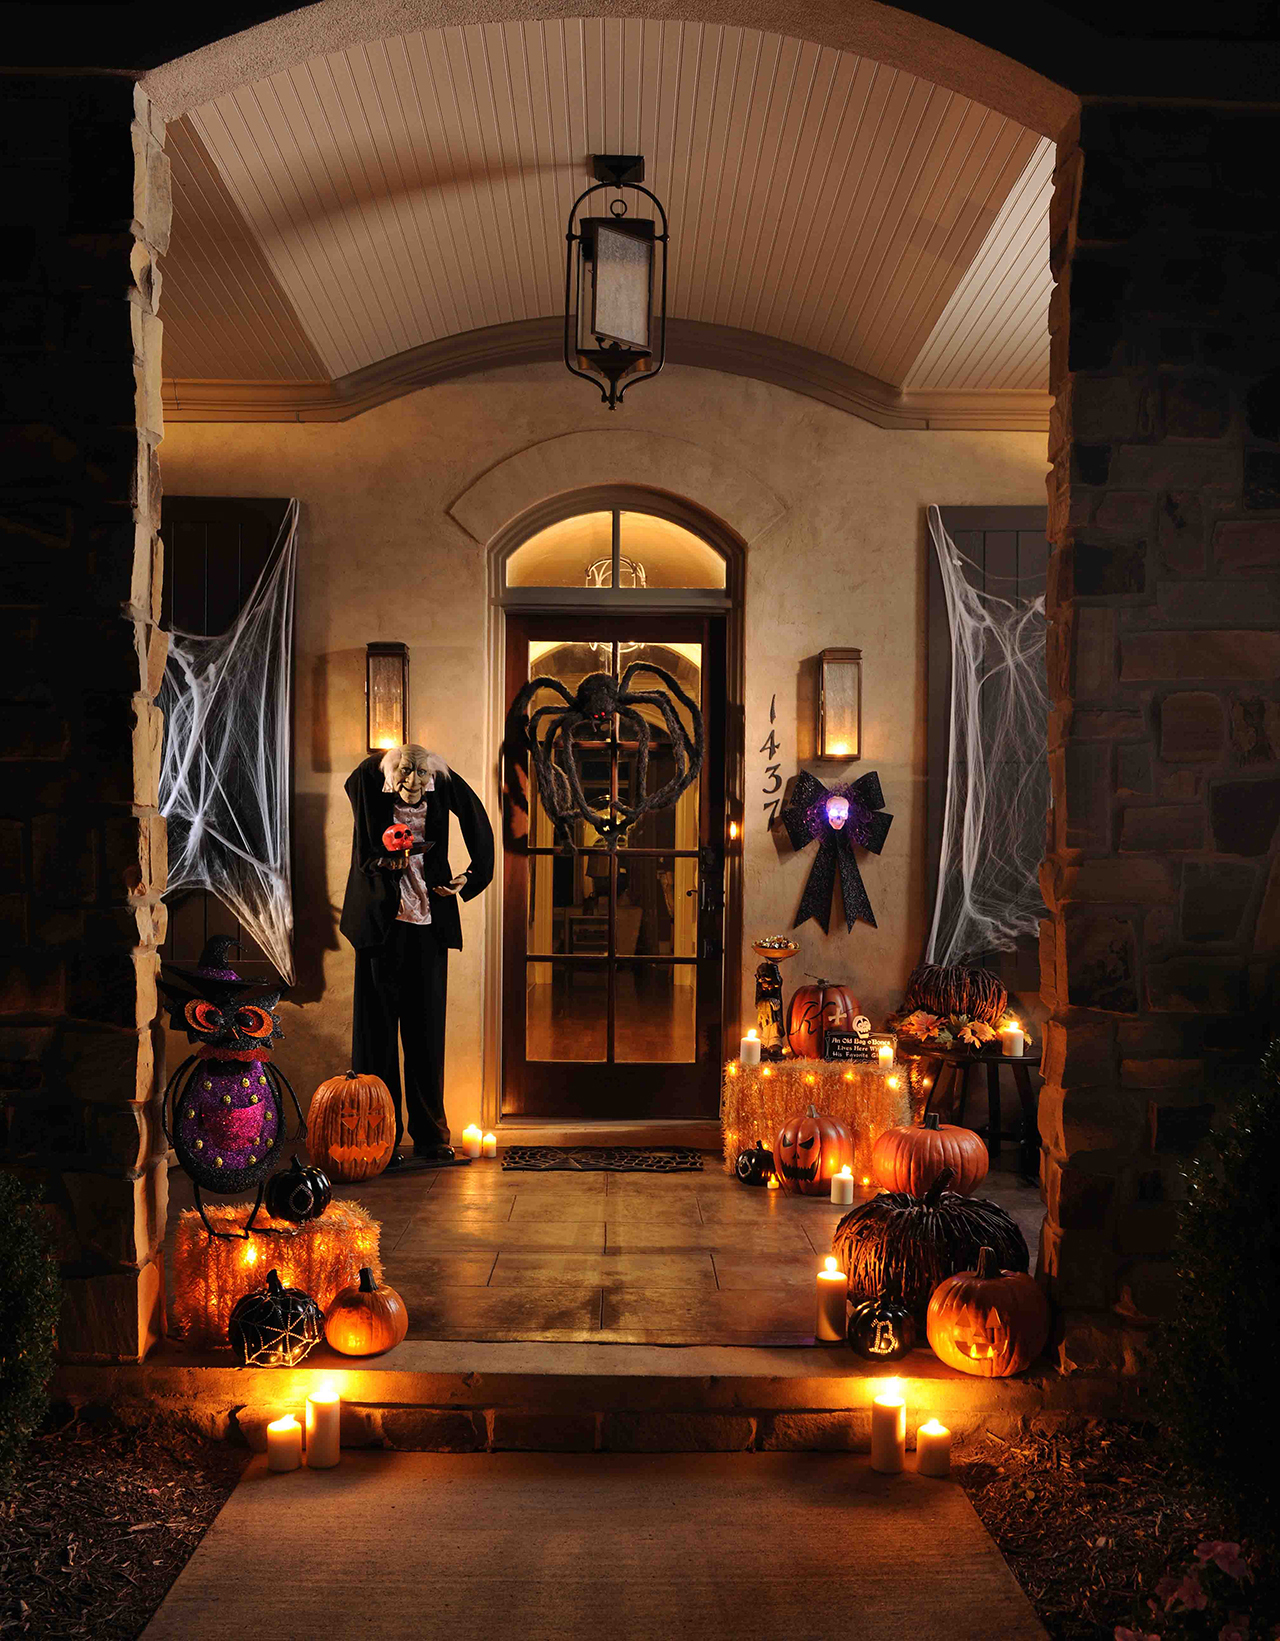 50 Chilling and Thrilling Halloween Porch Decorations for 2020